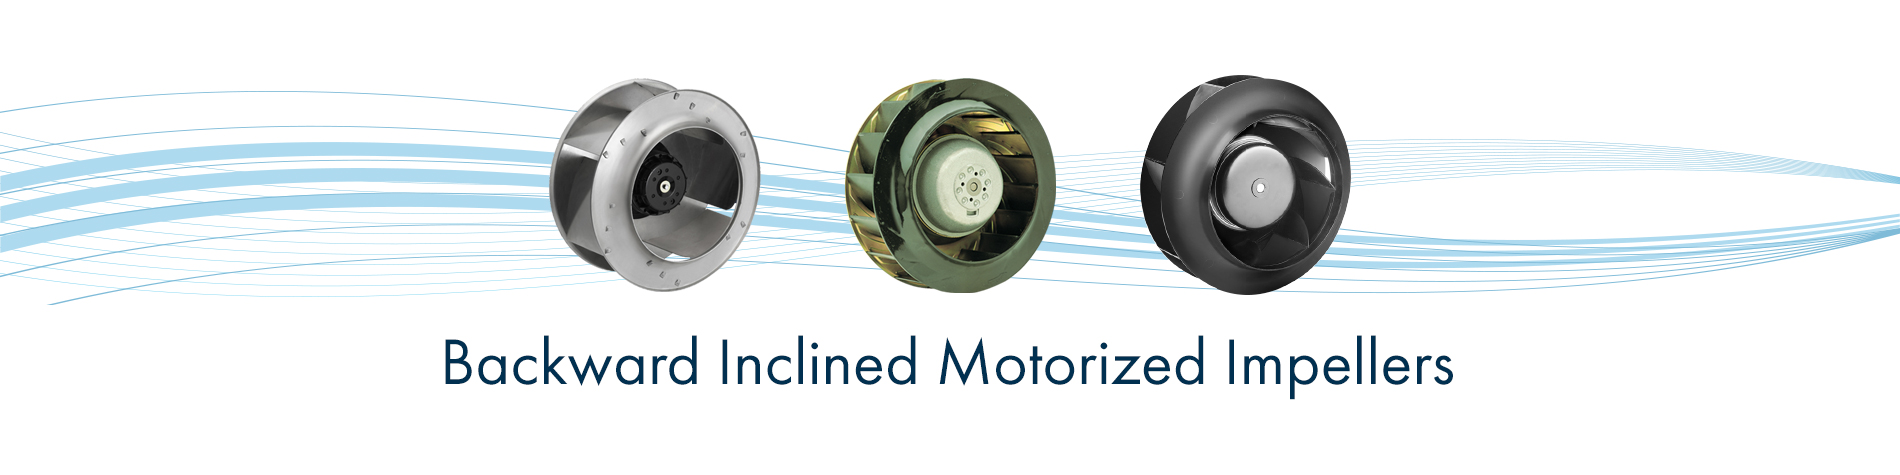 Backward Curved Motorized Impeller Fans